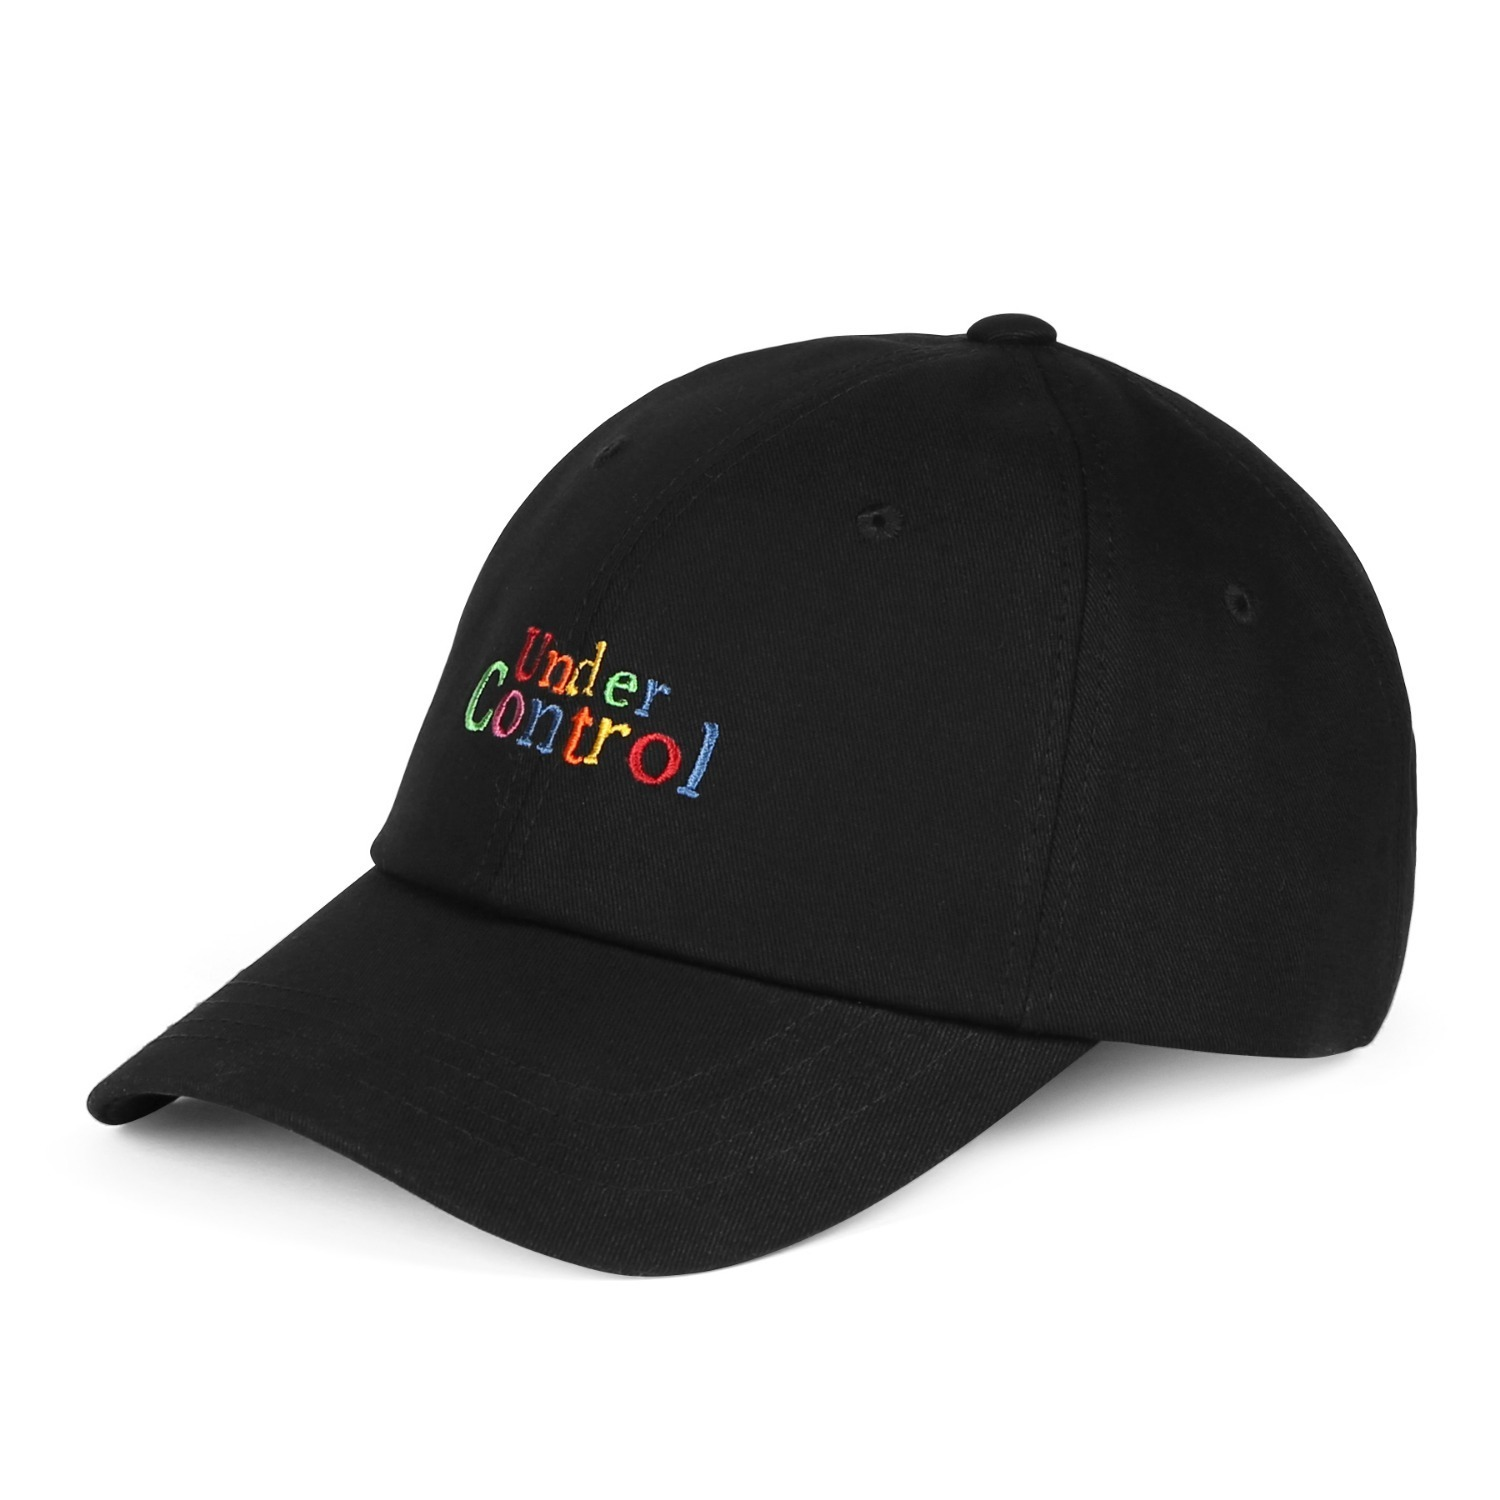 TEAM CAP / CLASSIC B B / MULTI BLACK